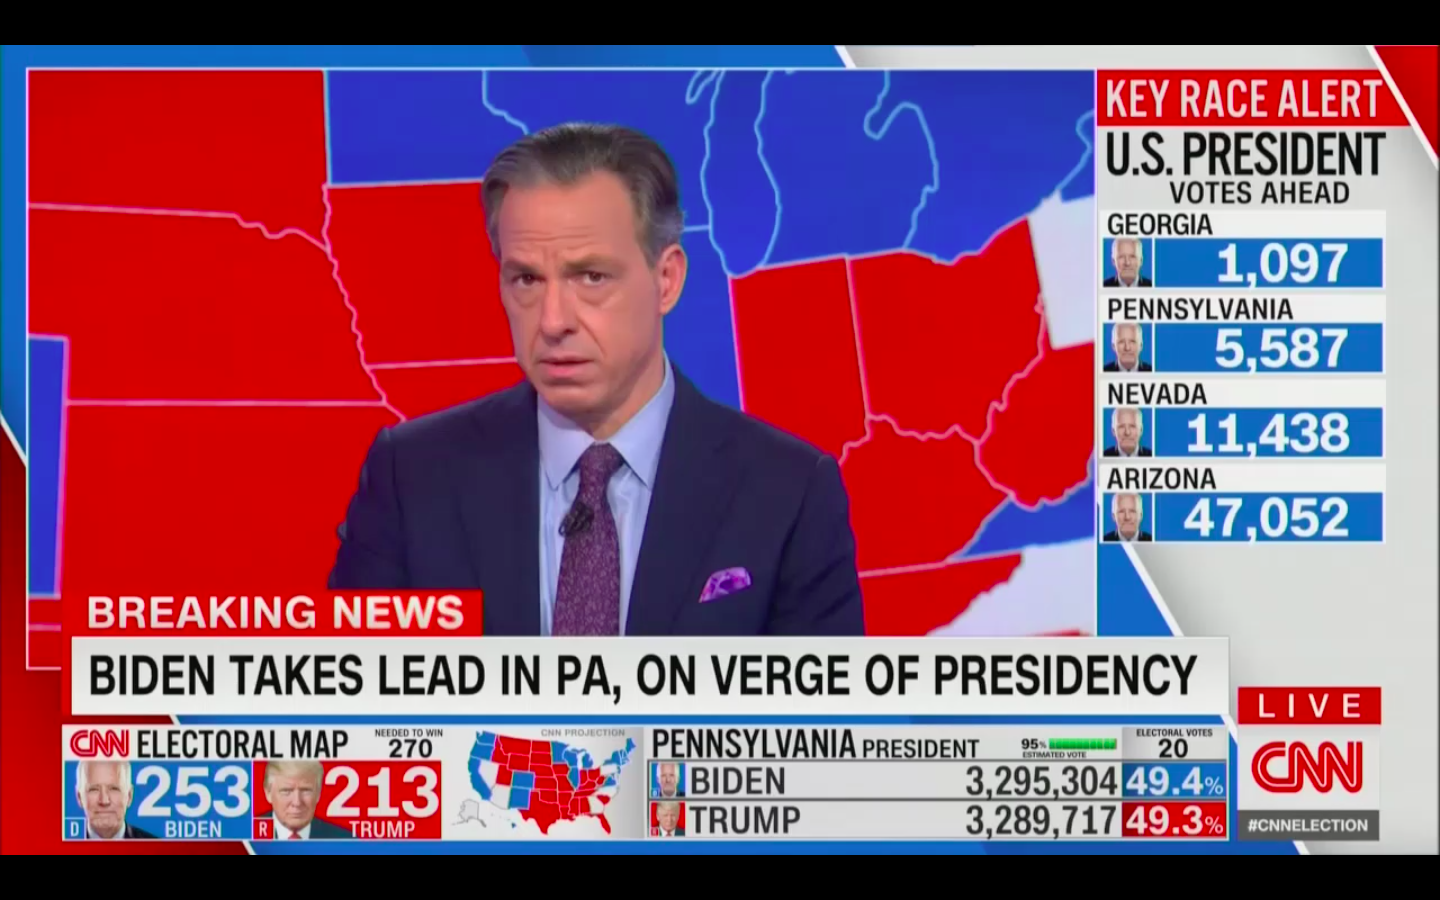 Jake Tapper: It Doesn't Matter If Trump Won't Concede, He'll Be 'Physically Escorted From the Building' If He 'Refuses To Acknowledge Reality'